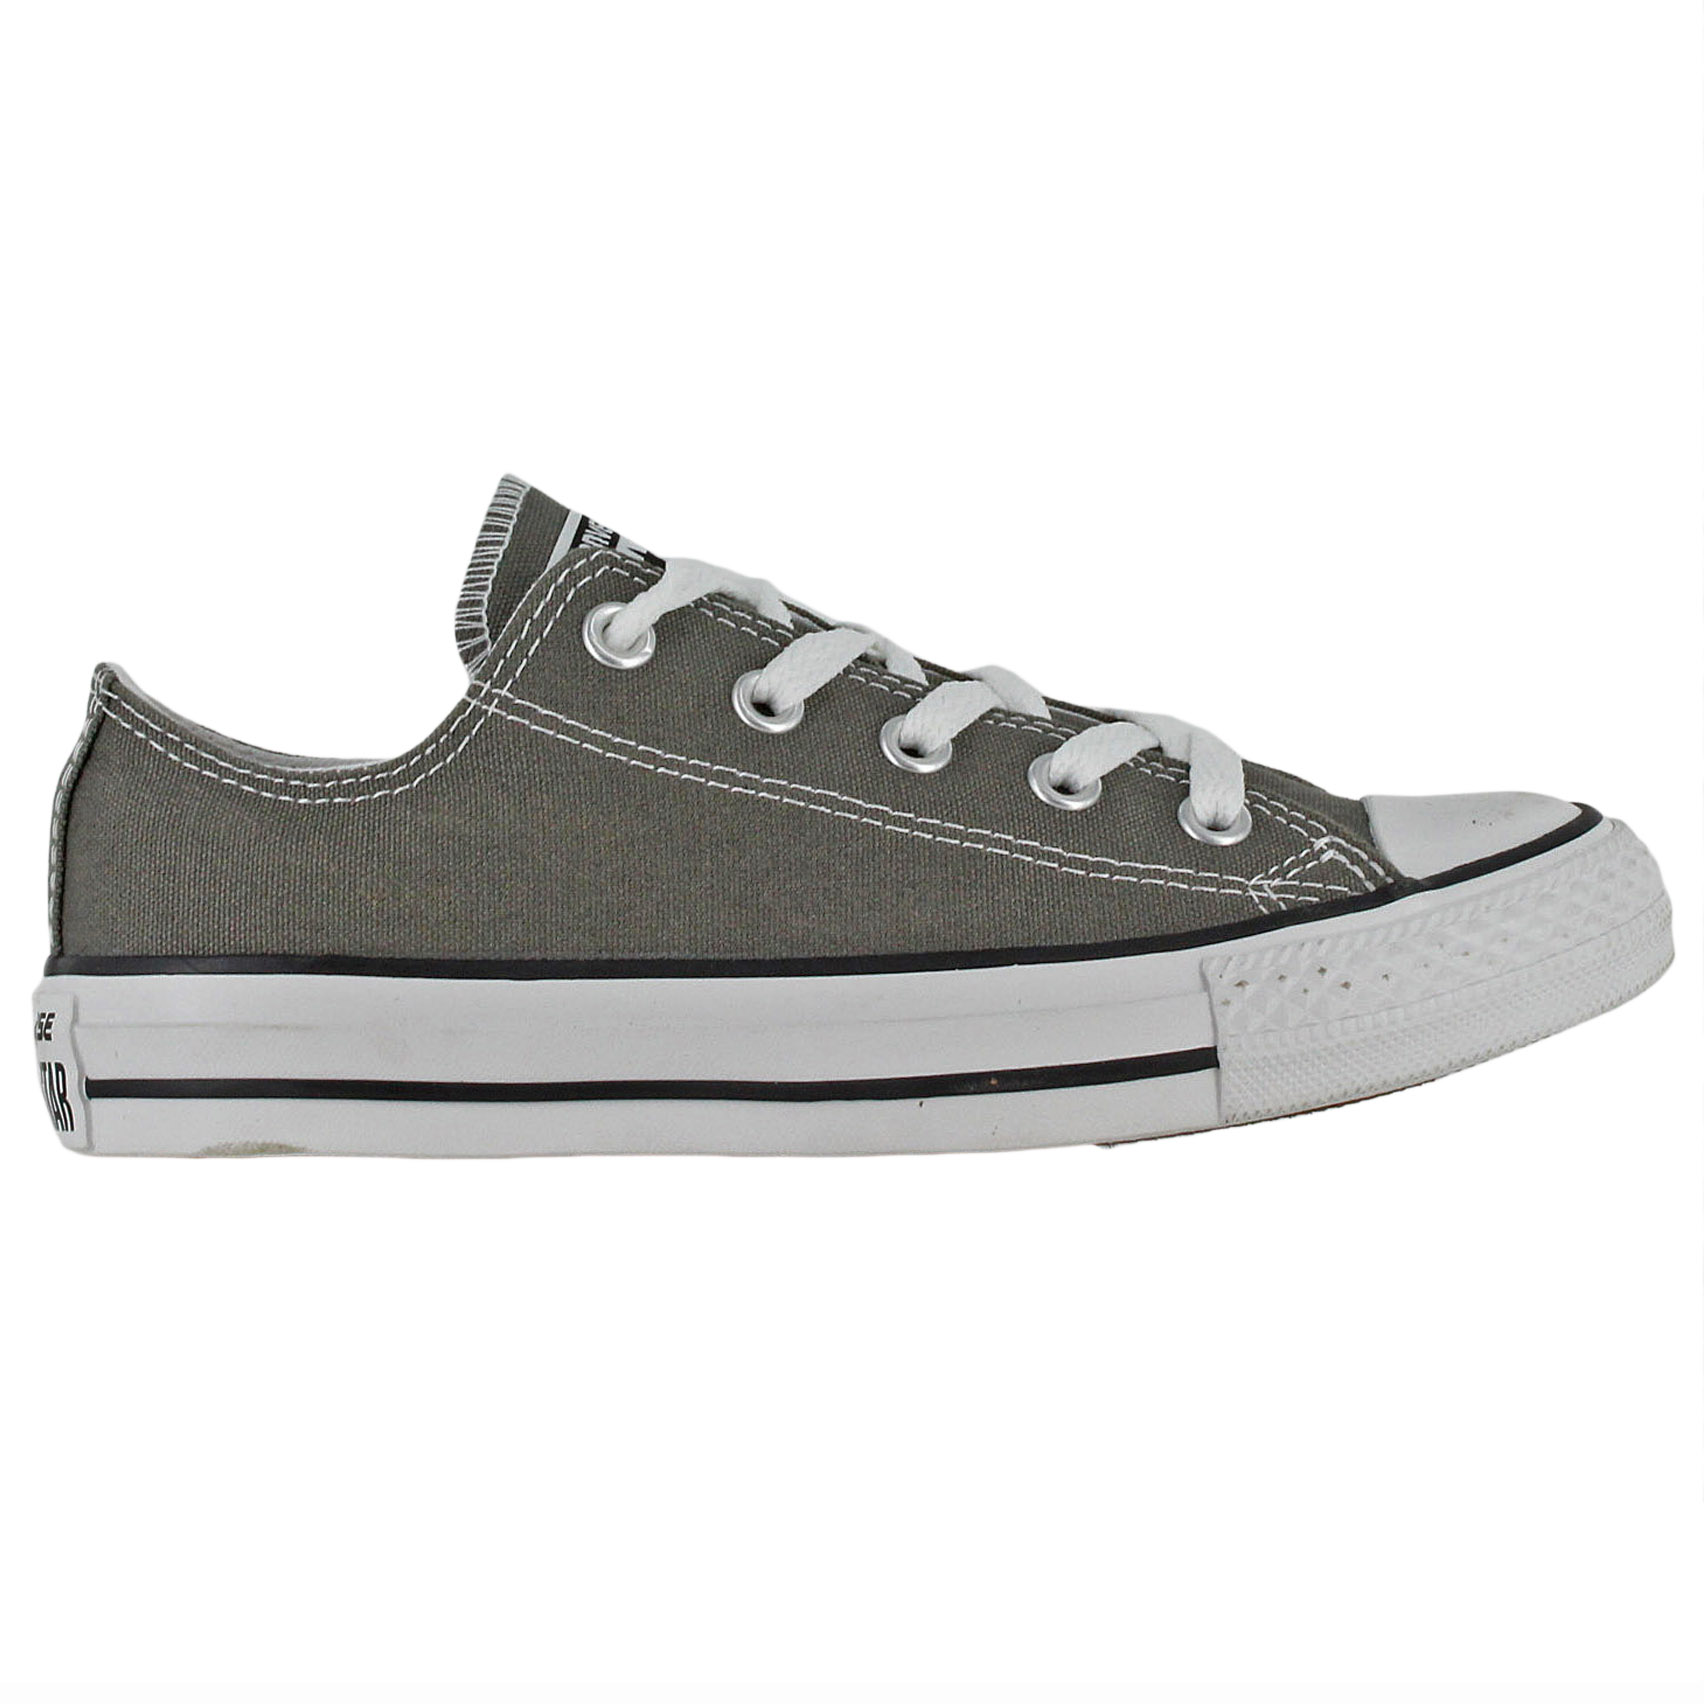 converse taille basse homme